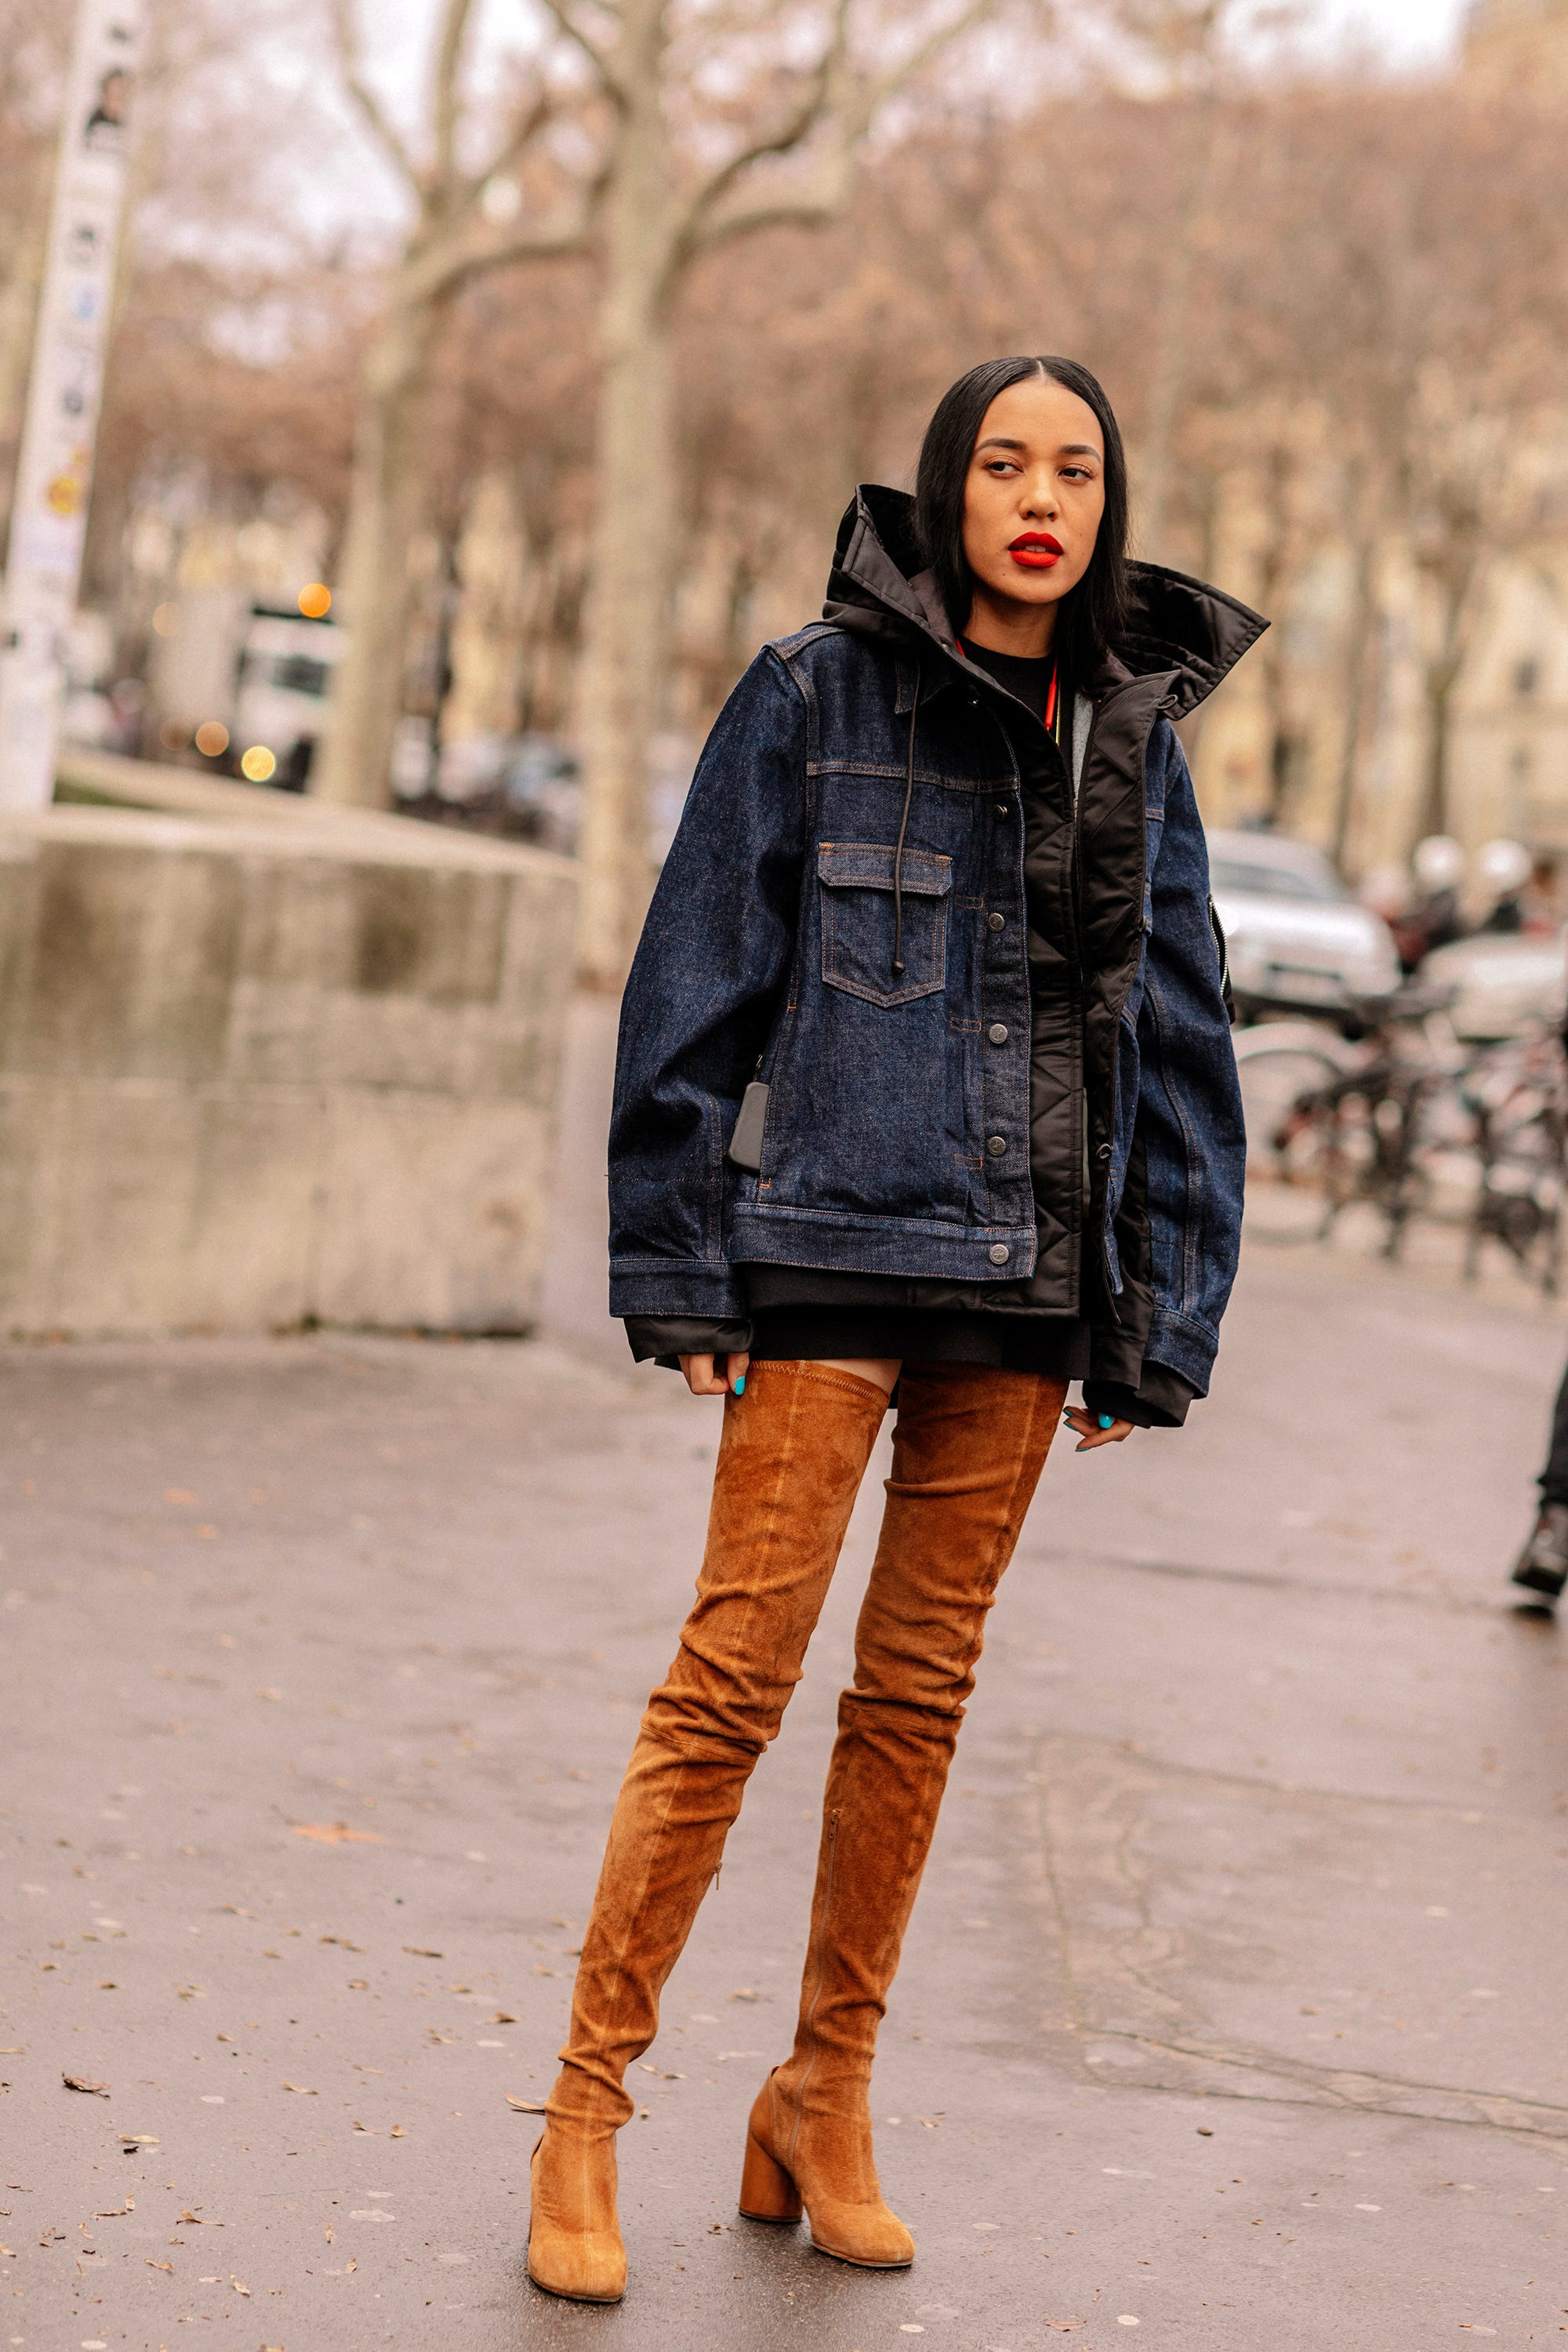 e22bf55921be Paris Fashion Week Winter 2019 Best Street Style